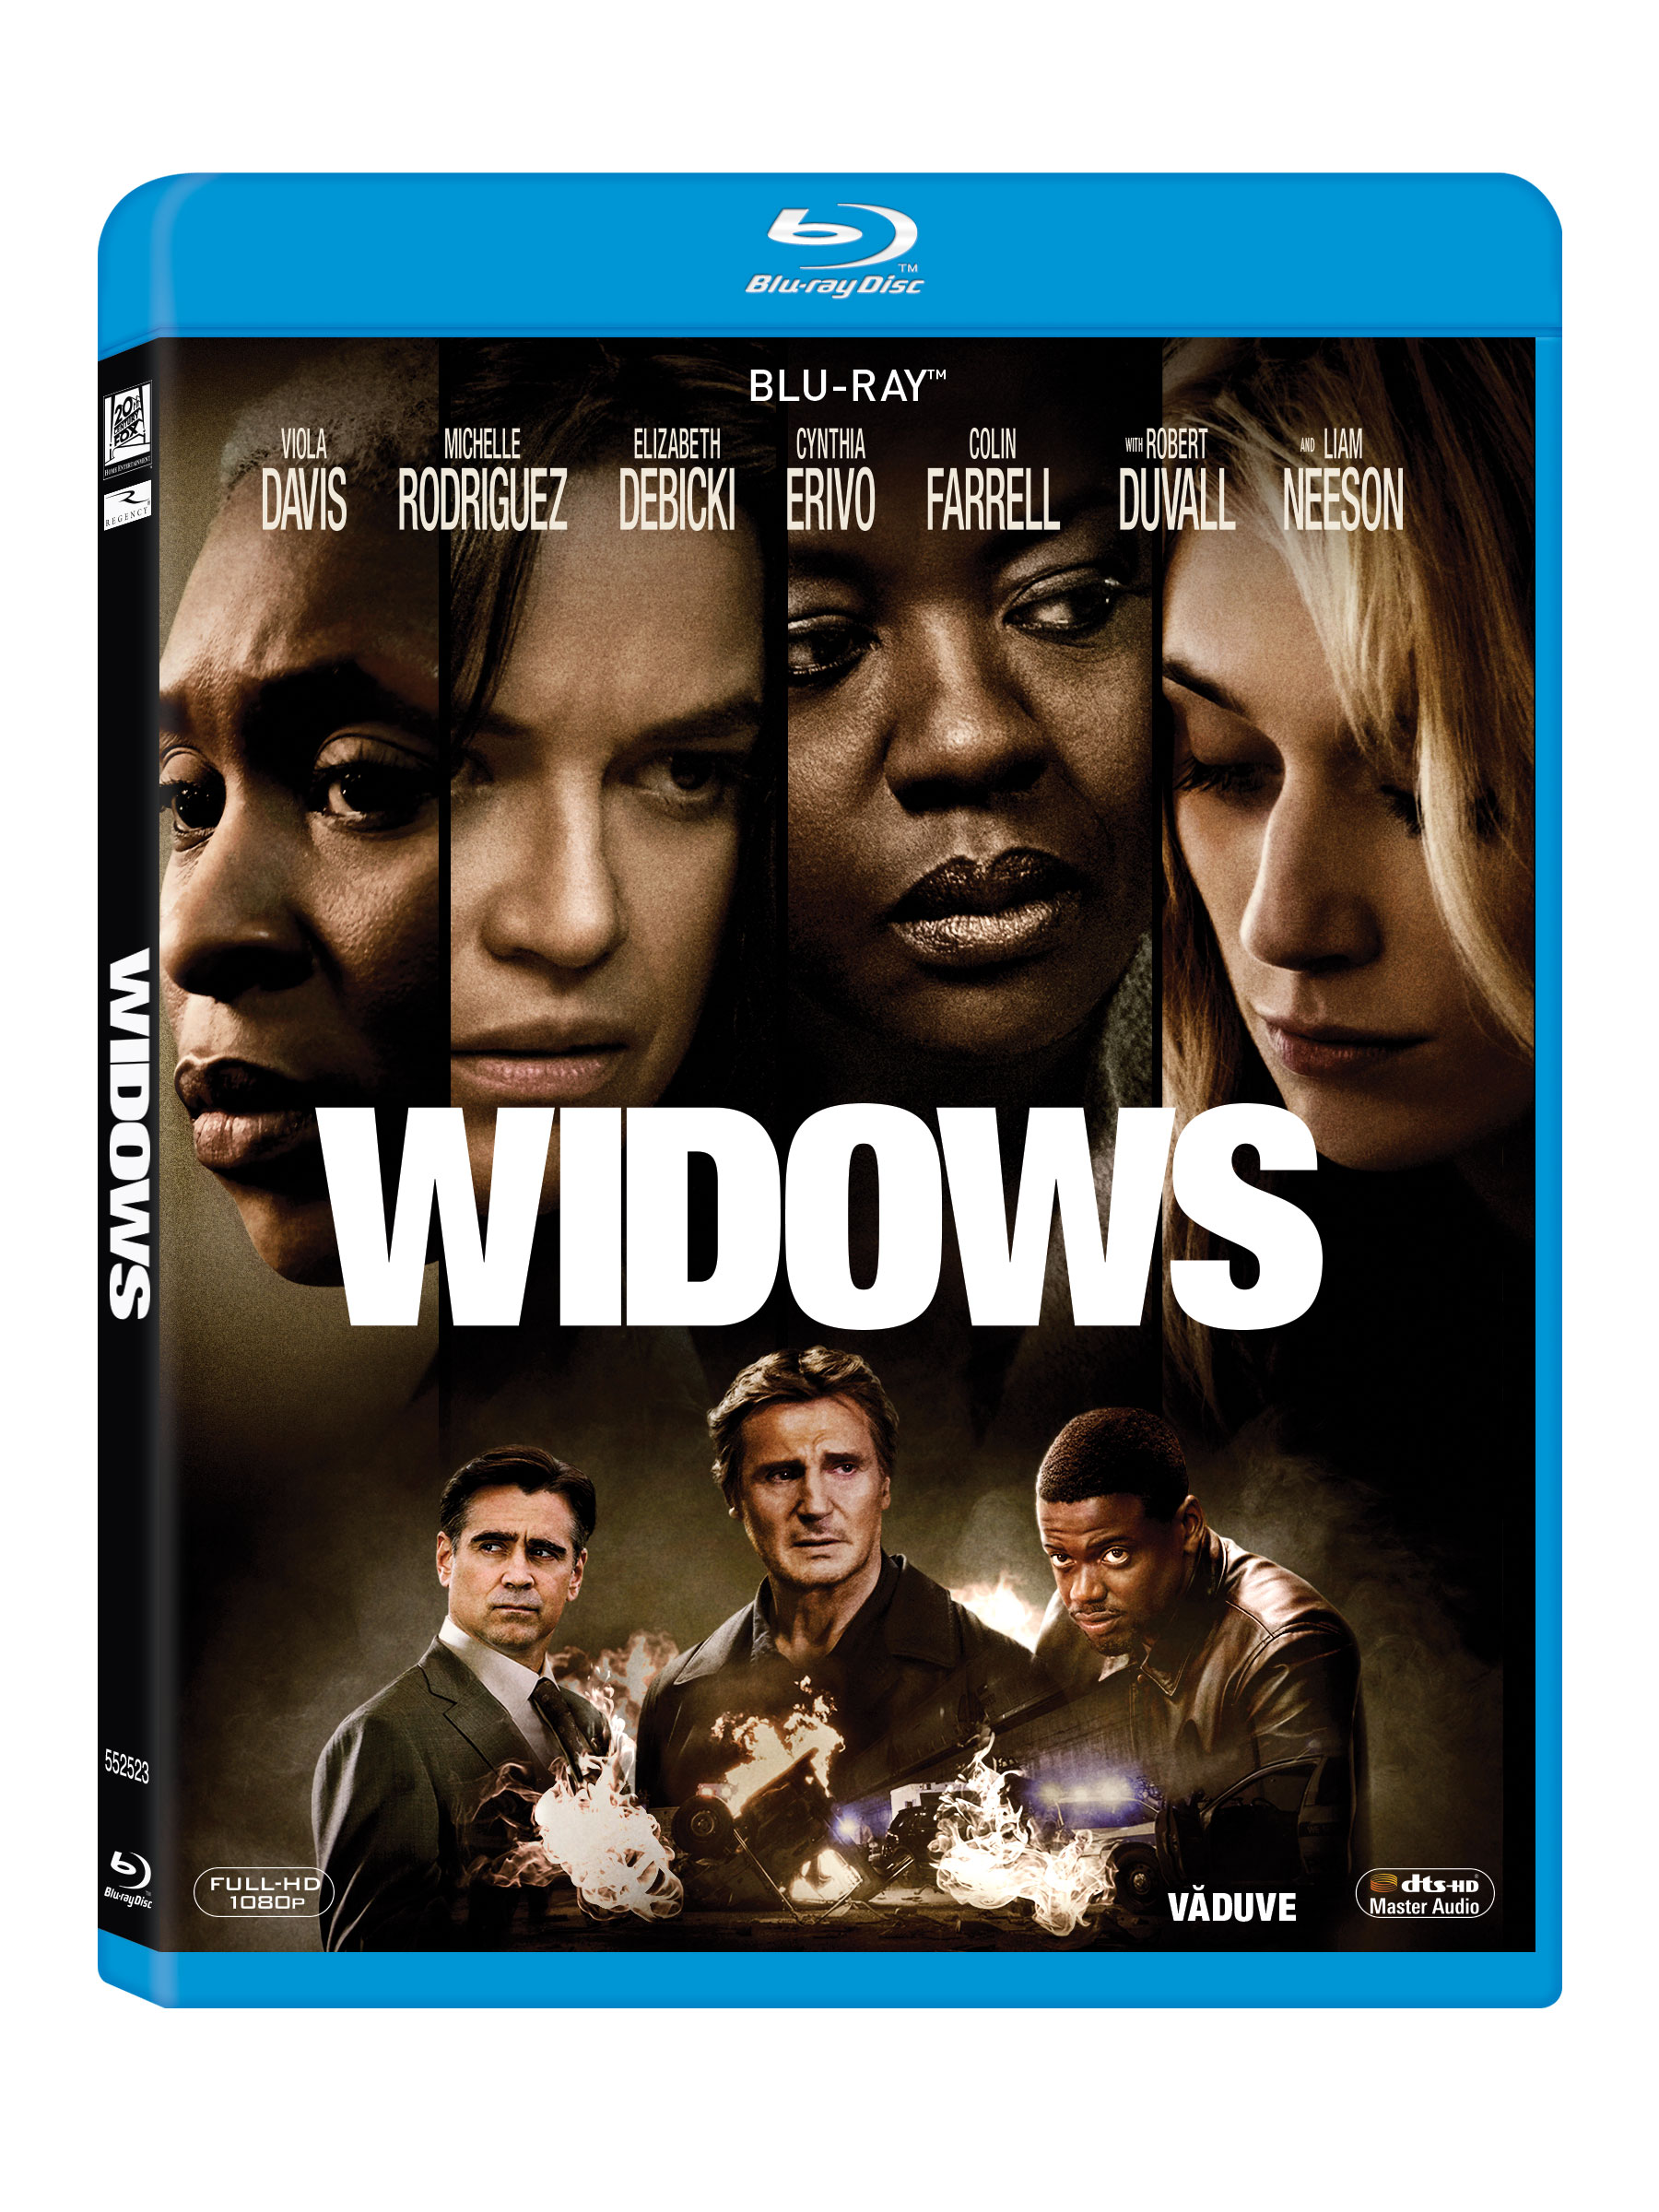 Vaduve / Widows (Blu-Ray Disc) thumbnail